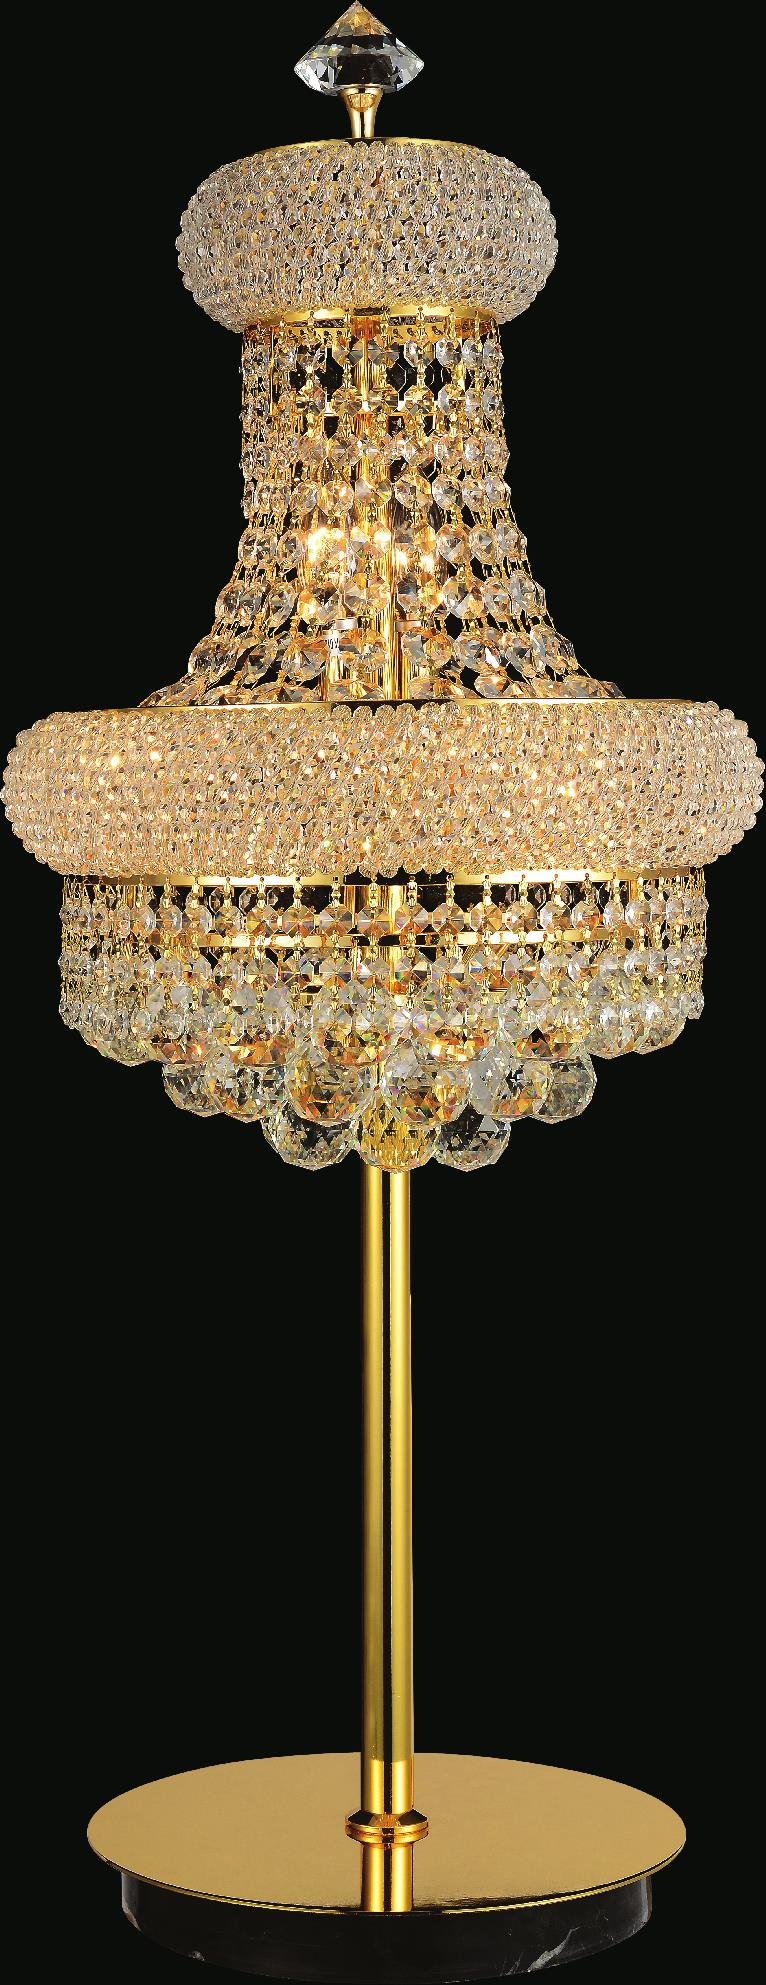 6 Light Table Lamp with Gold finish